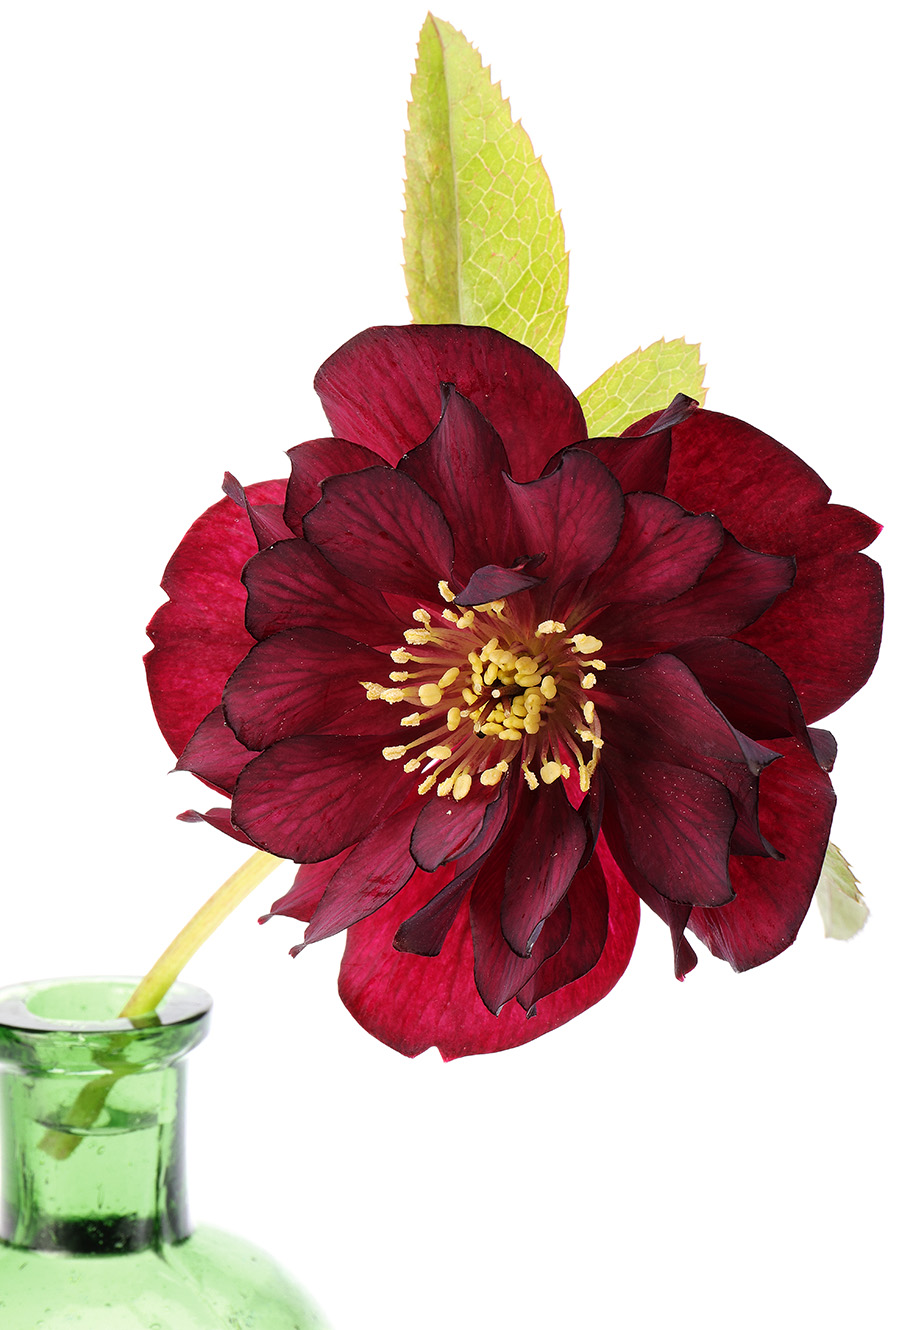 A dark red double hellebore.